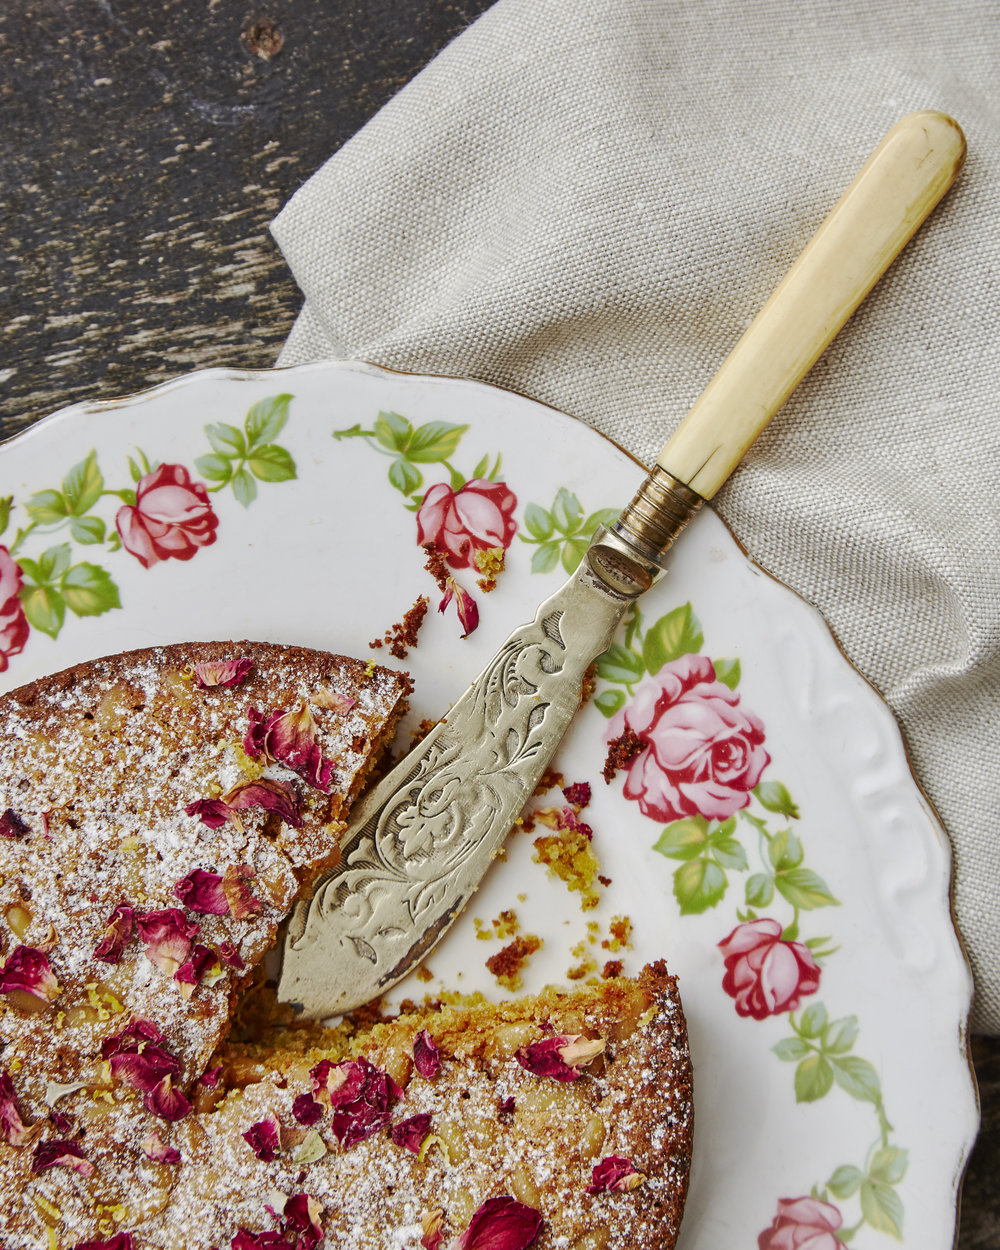 Pistachio and pine nut cake by Lorna for Enrich and Endure. Photo: TACA